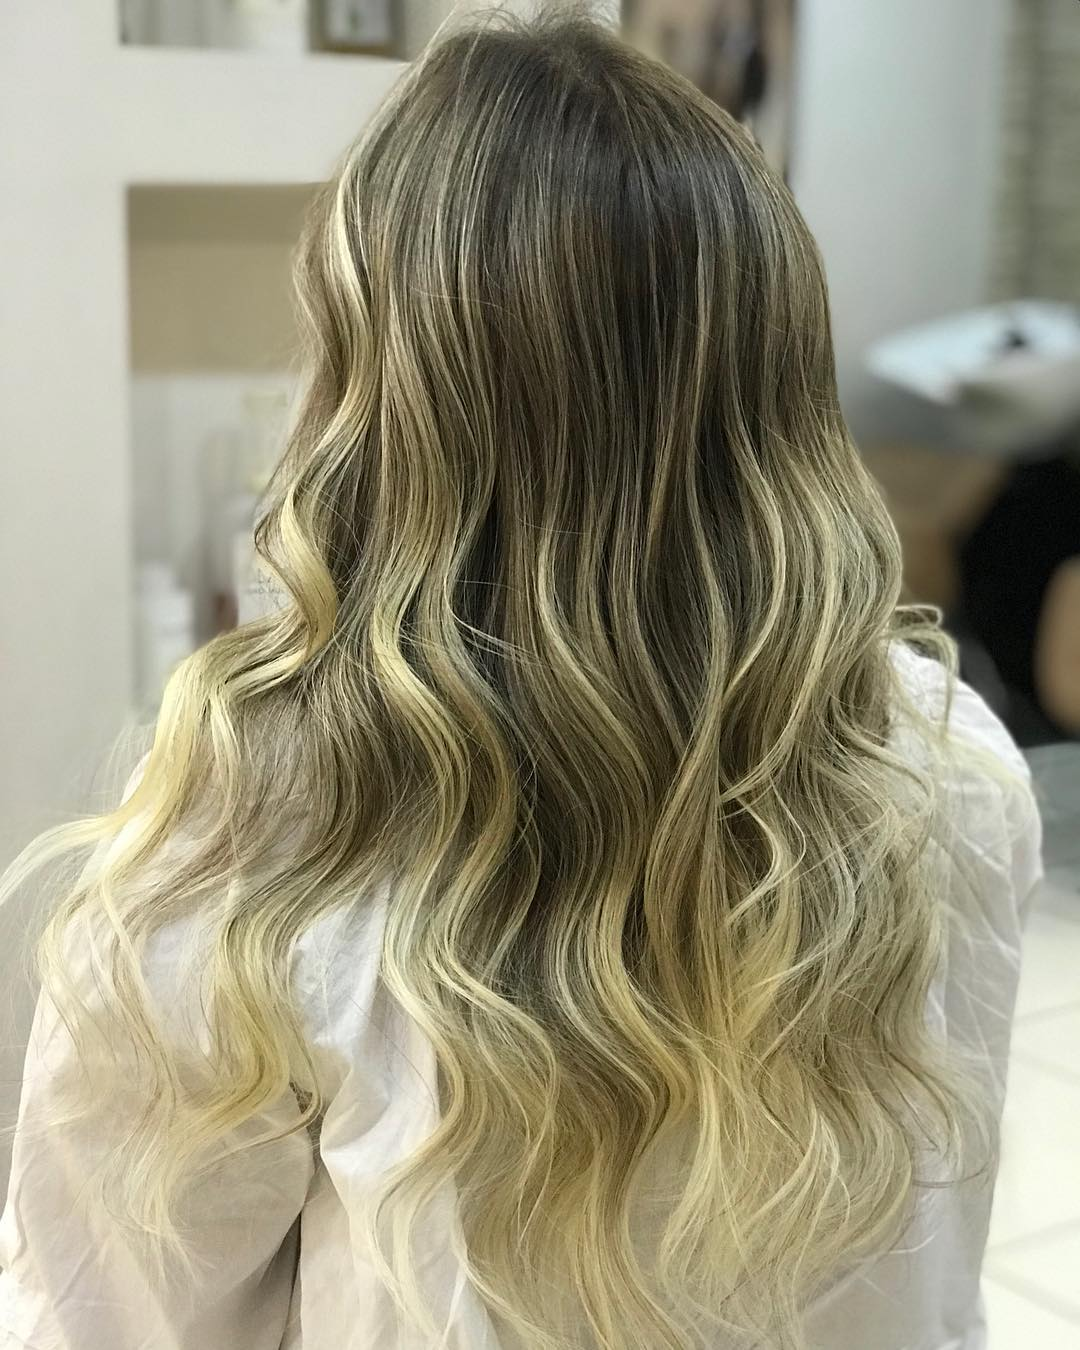 shorthairstyles for ladies with wavy hair 2019-20